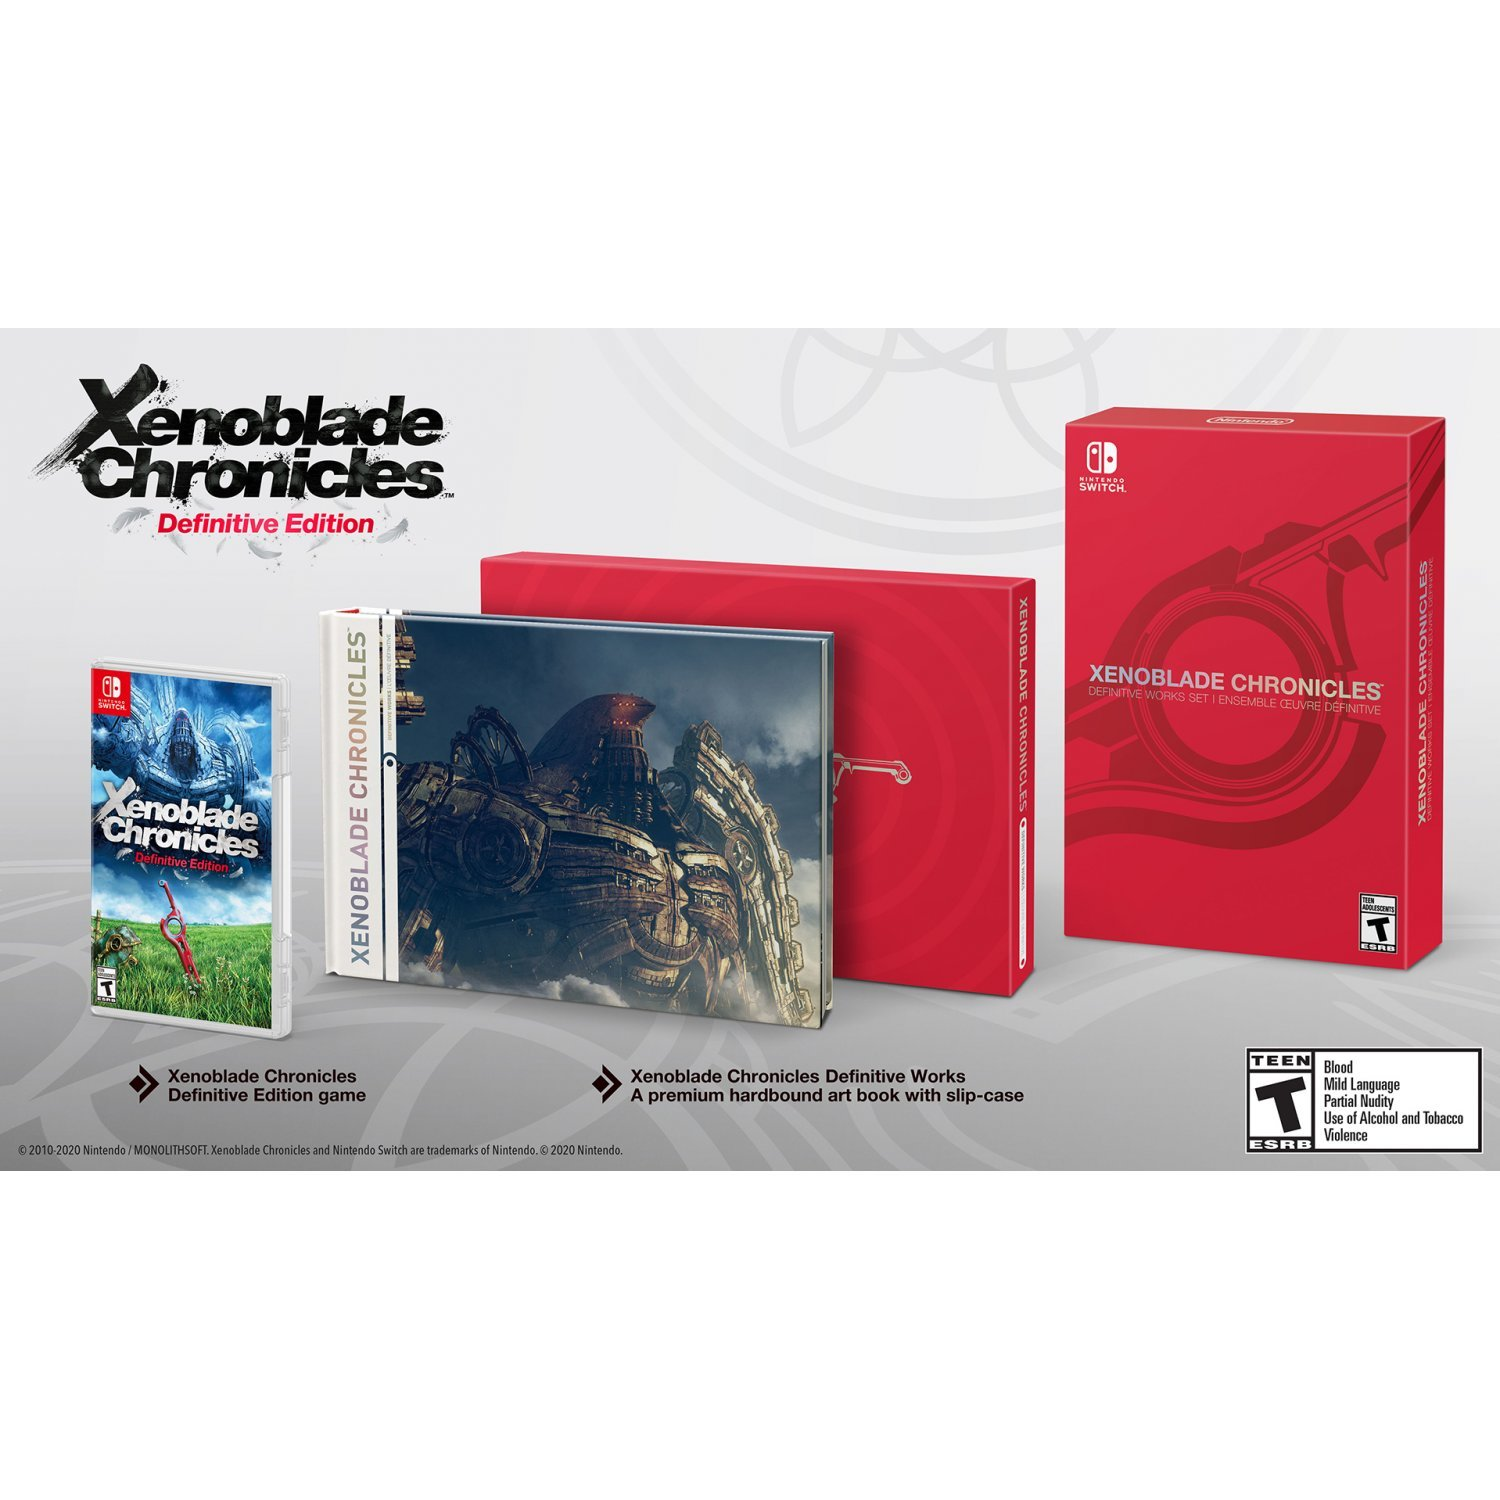 xenoblade-chronicles-definitive-edition-definitive-works-set-625497.12.jpg